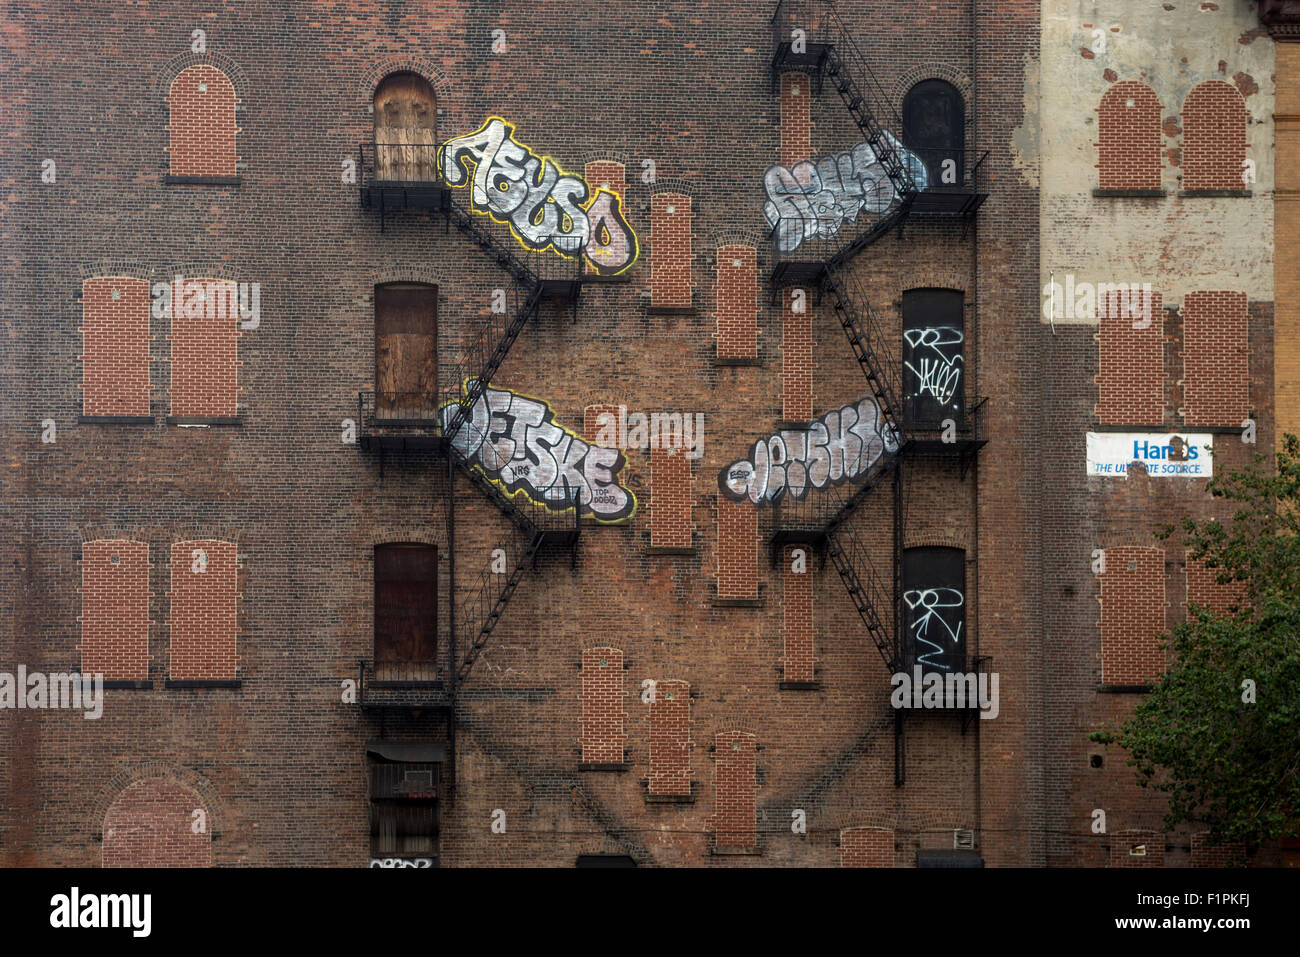 New York, NY 30 August 2015 - Vacant tenement building with graffiti and fire escapes on the Lower East Side - Stock Image